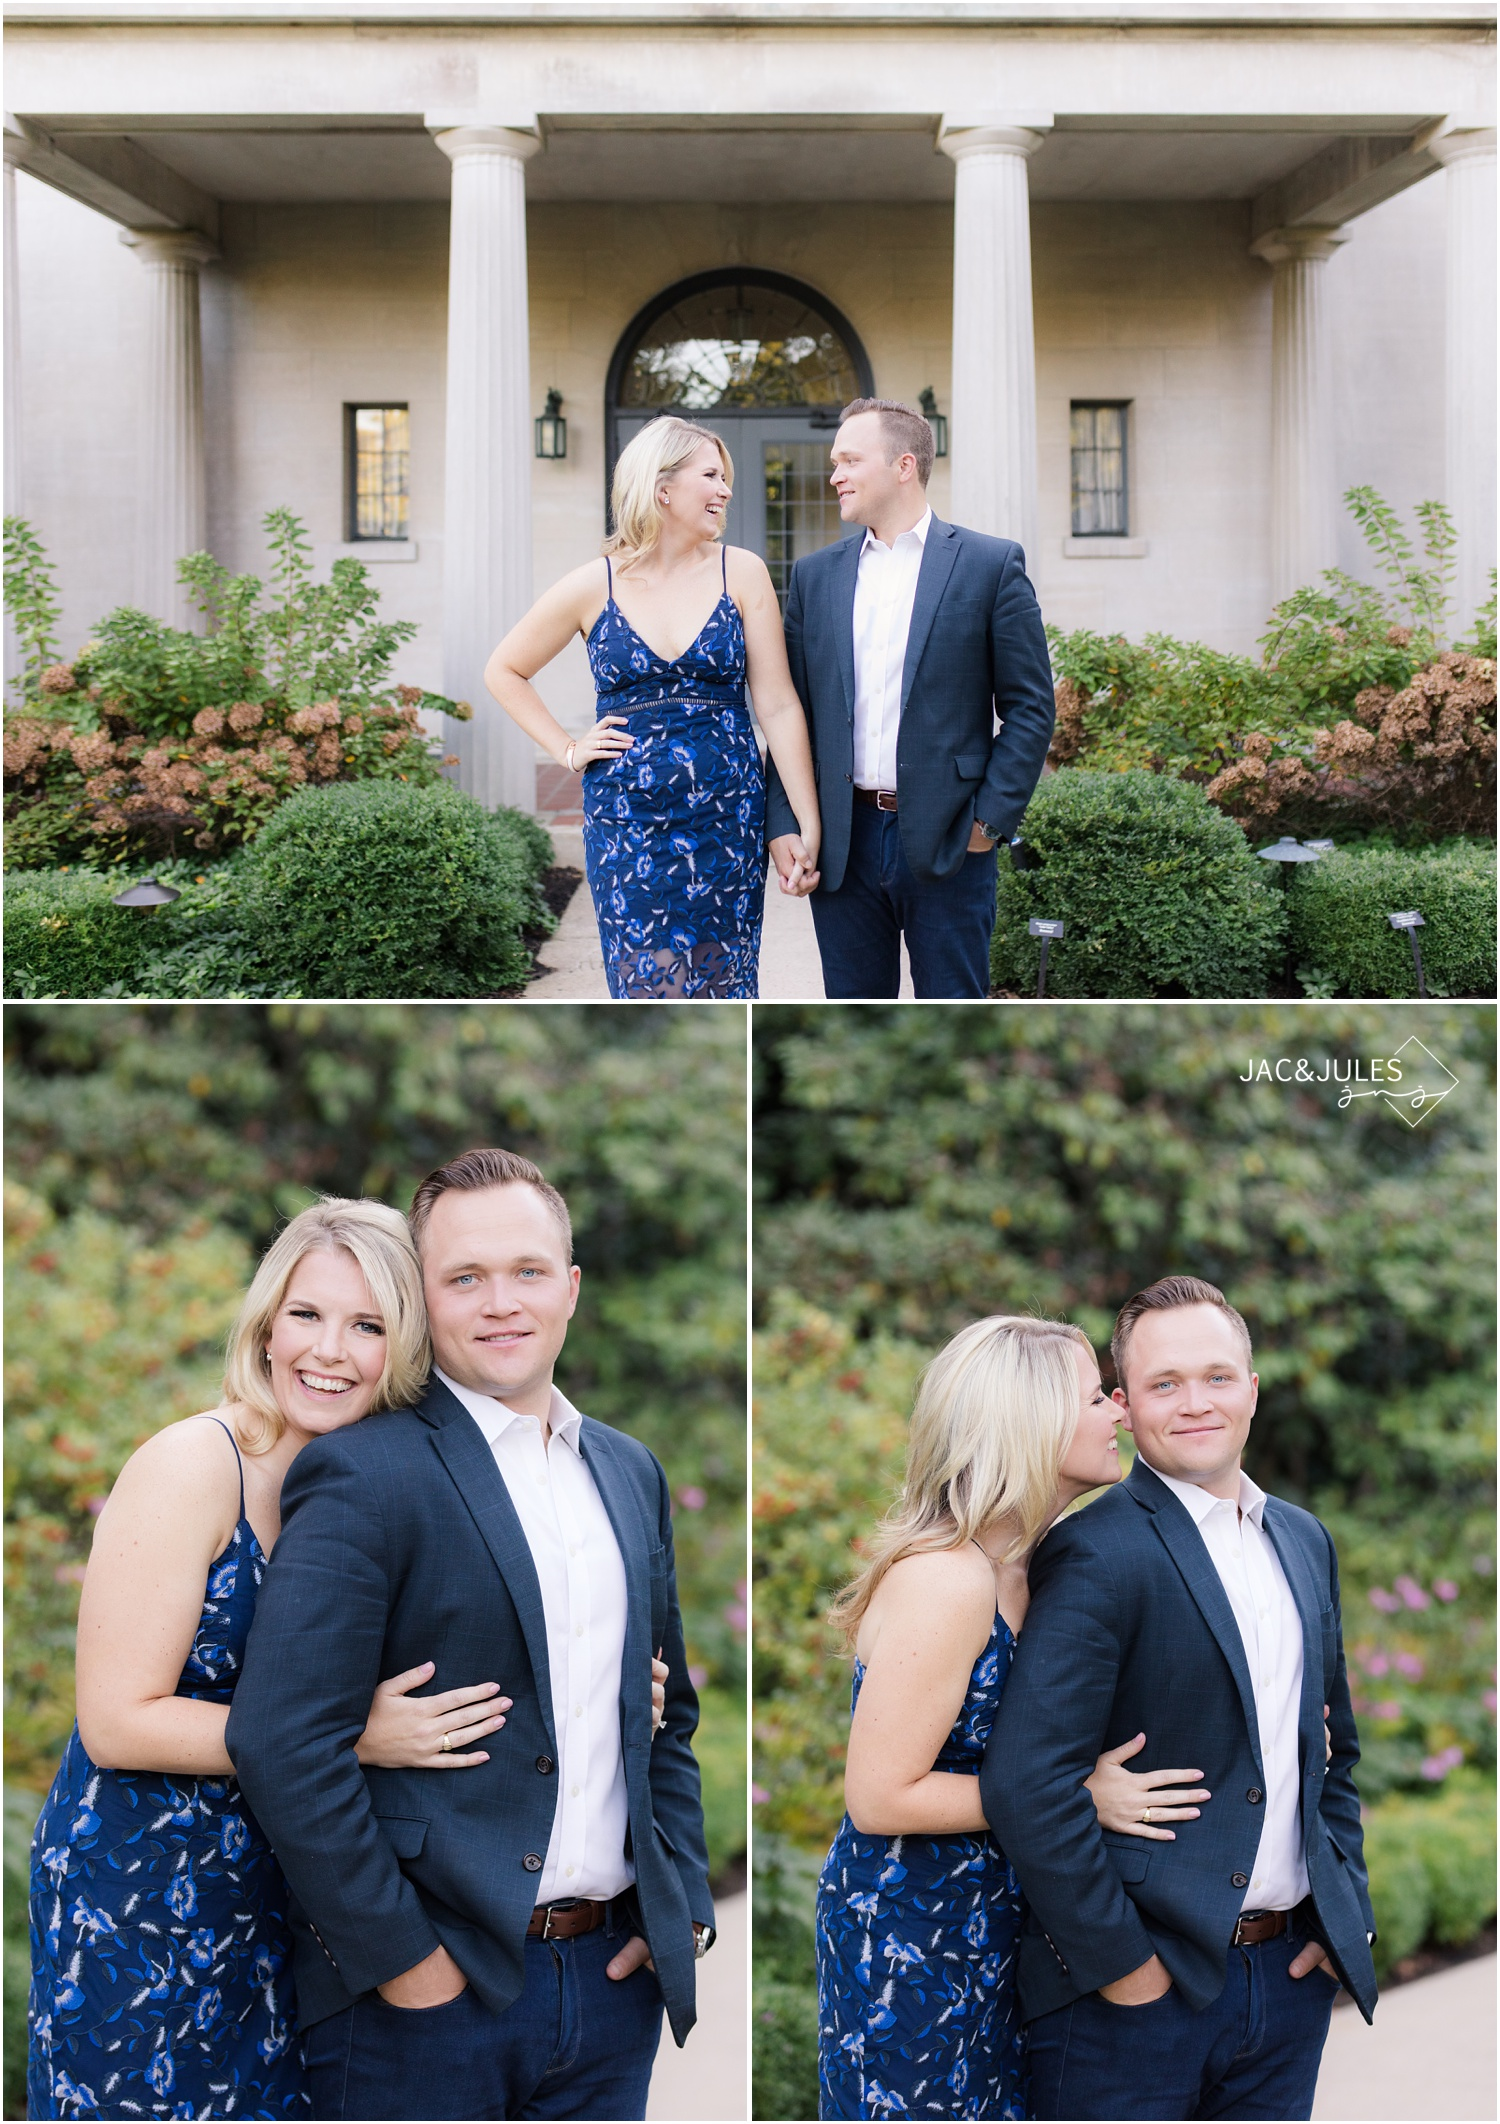 Engagement photos at Van Vleck House and Gardens in Montclair, NJ.